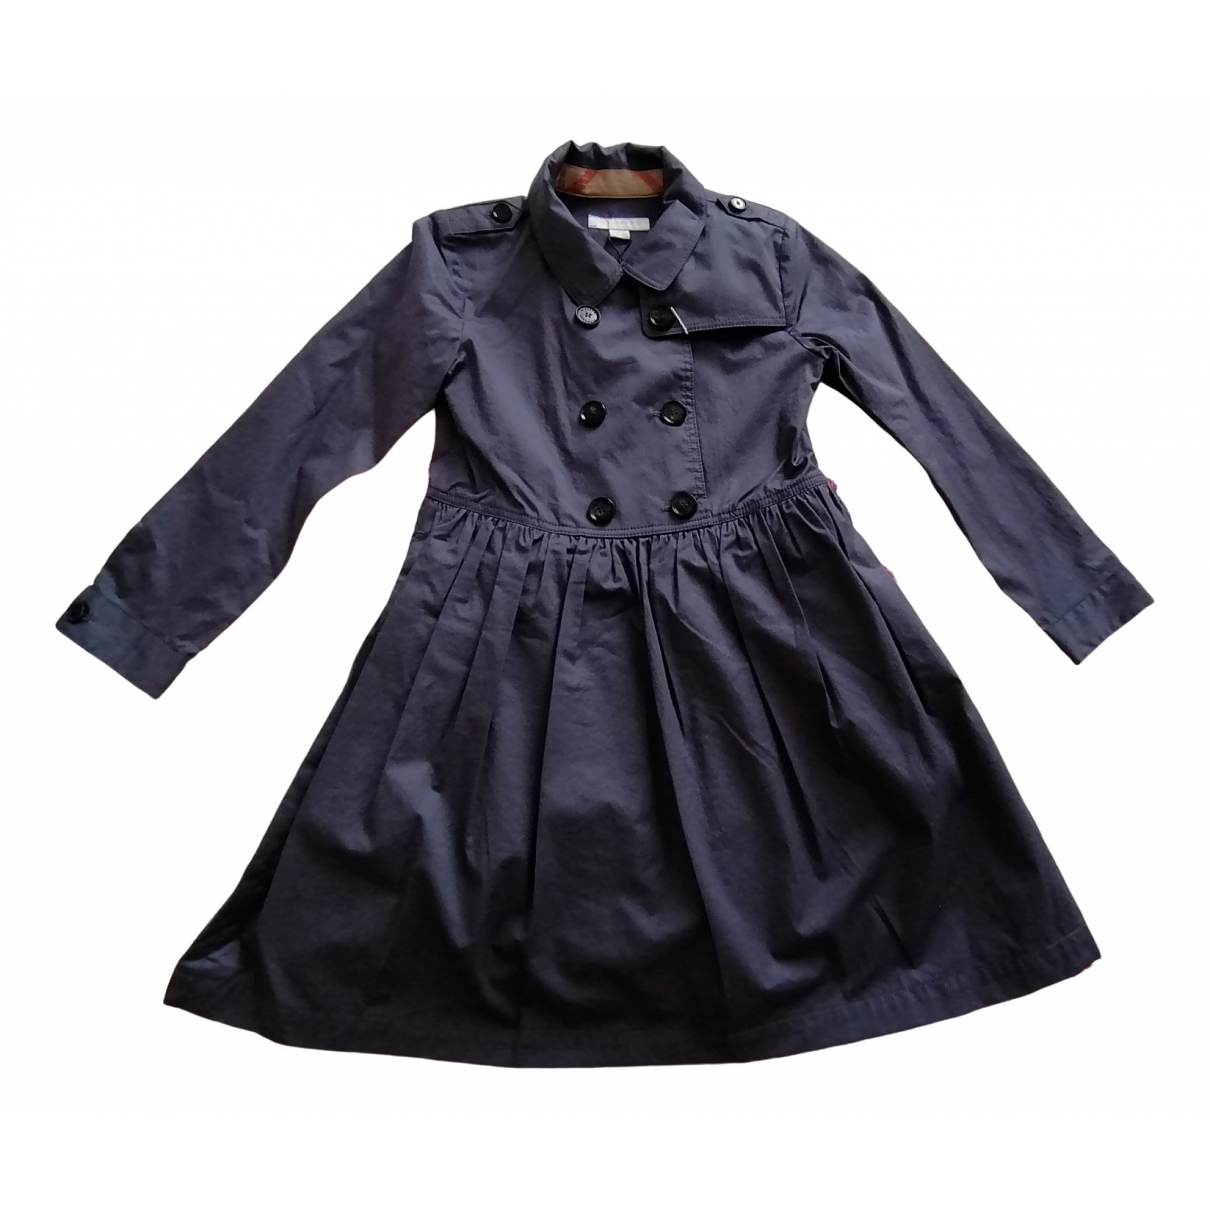 Burberry \N Blue Cotton dress for Kids 8 years - up to 128cm FR